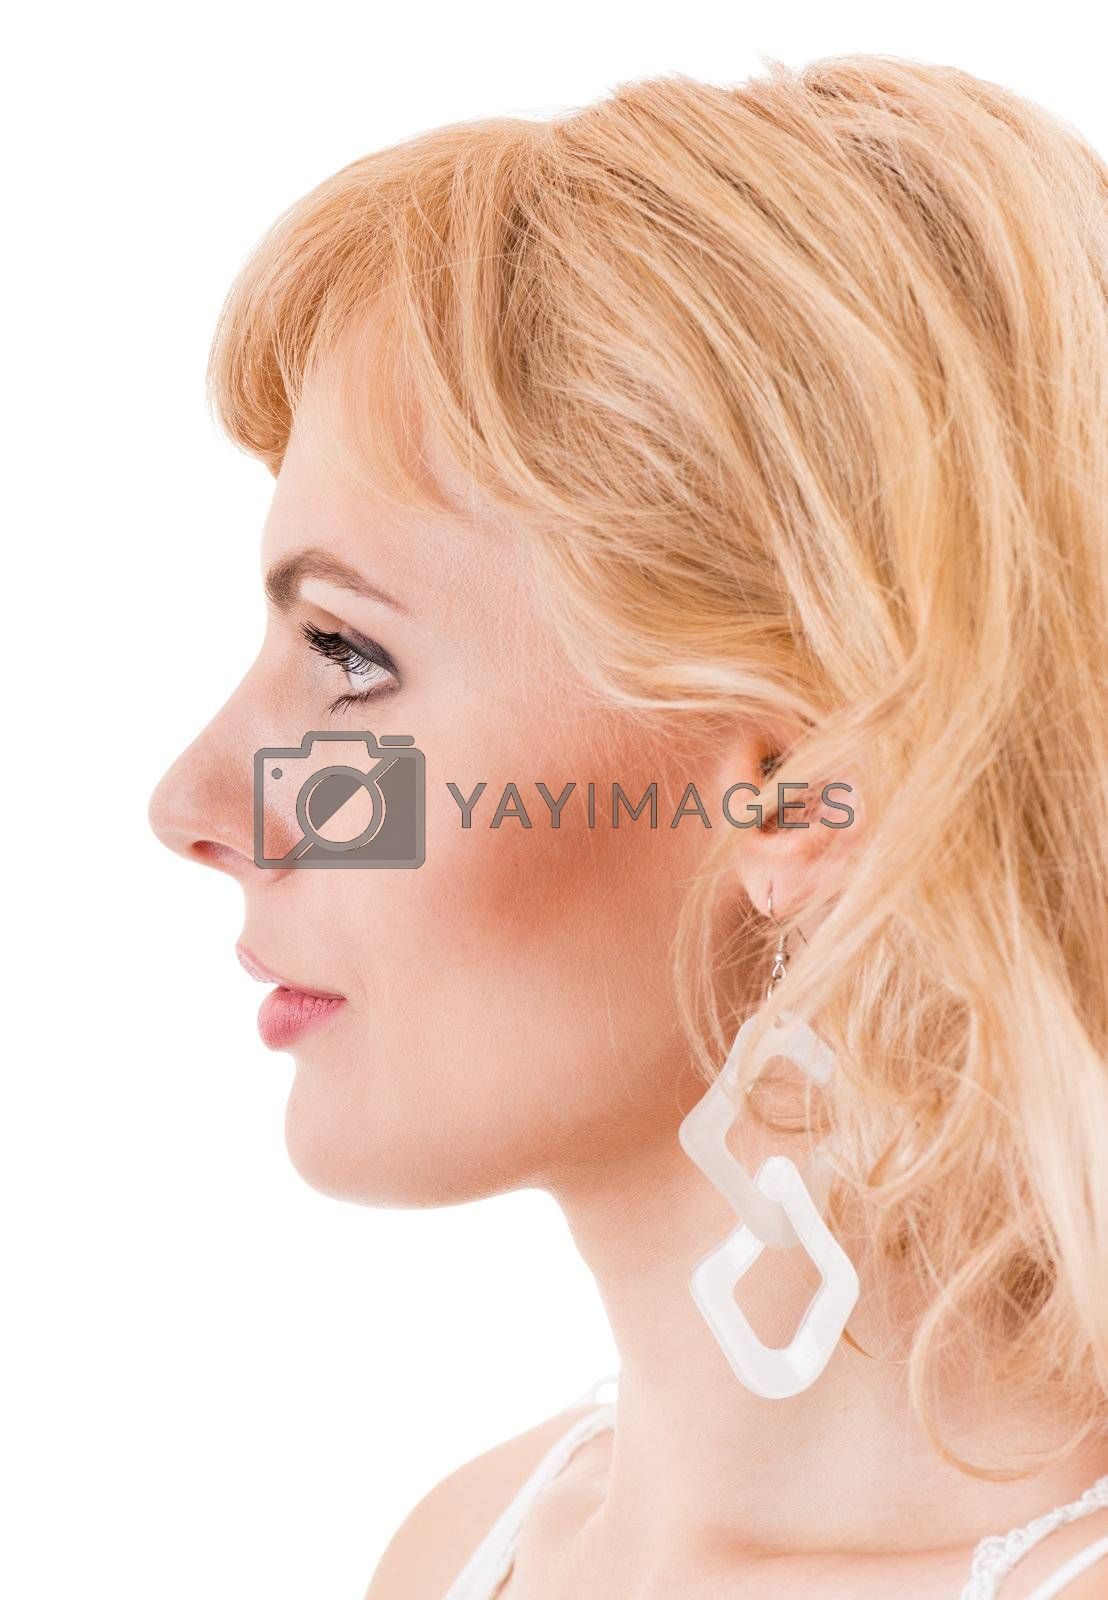 profile of a young woman is very close